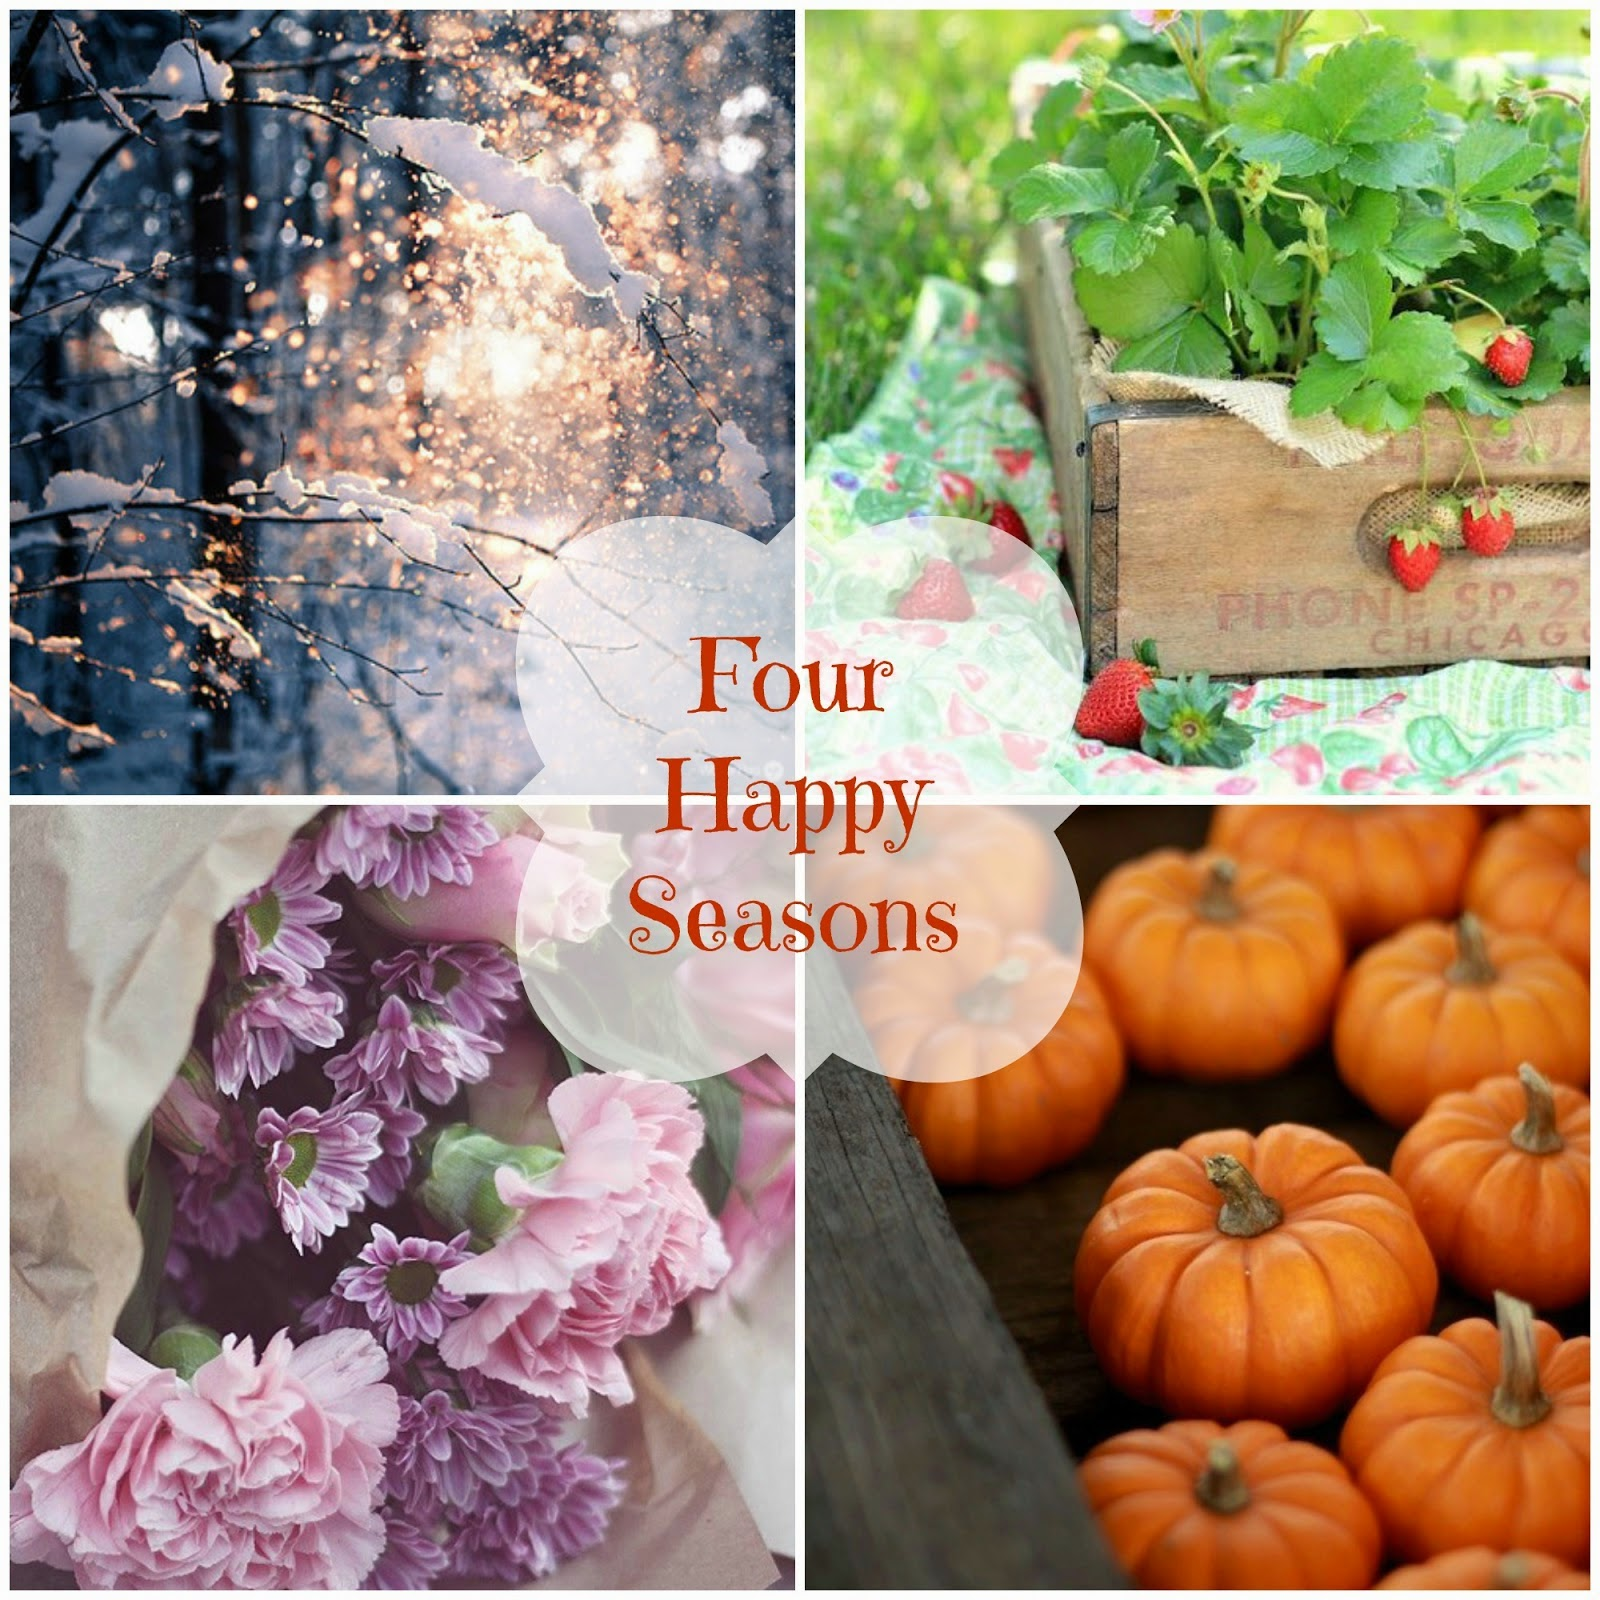 Four Happy Seasons